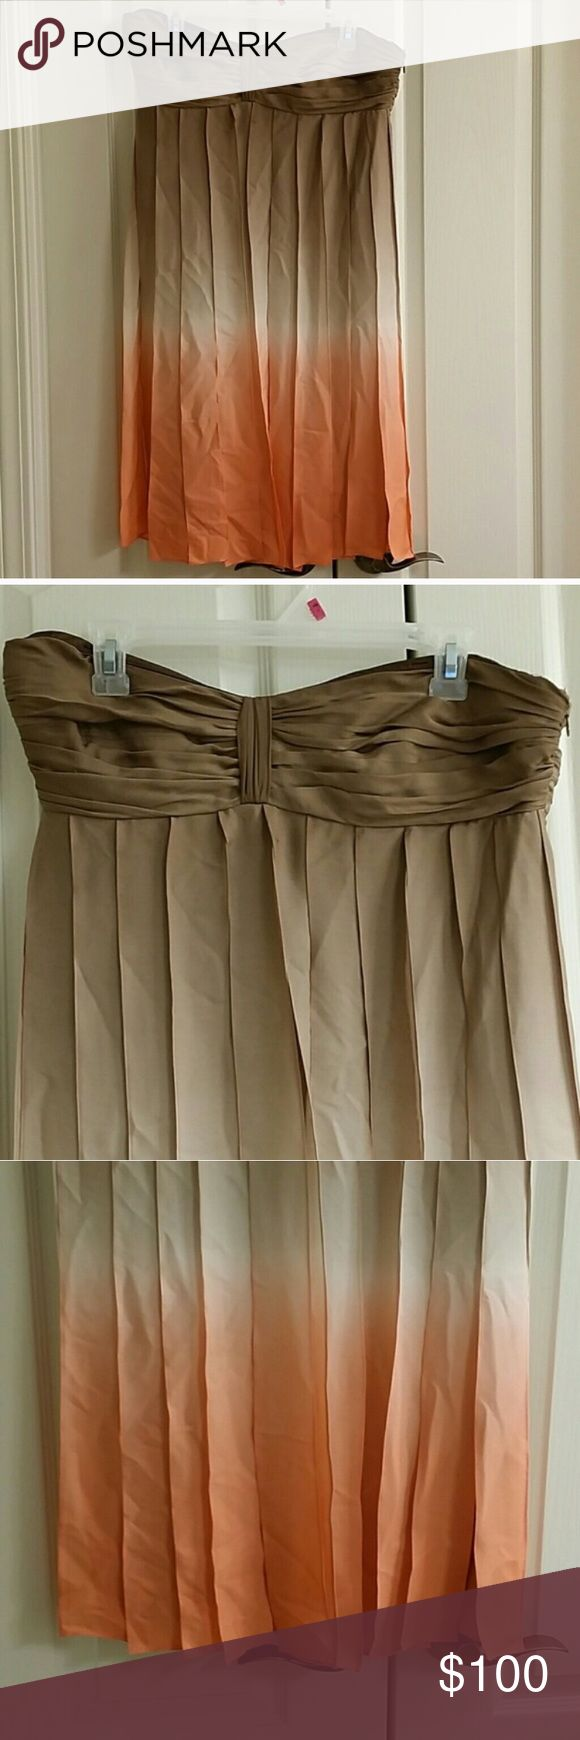 Nwt size 12 Nine West semi formal ombre dress Nwt size 12 Nine West semi formal ombre dress Nine West Dresses Strapless